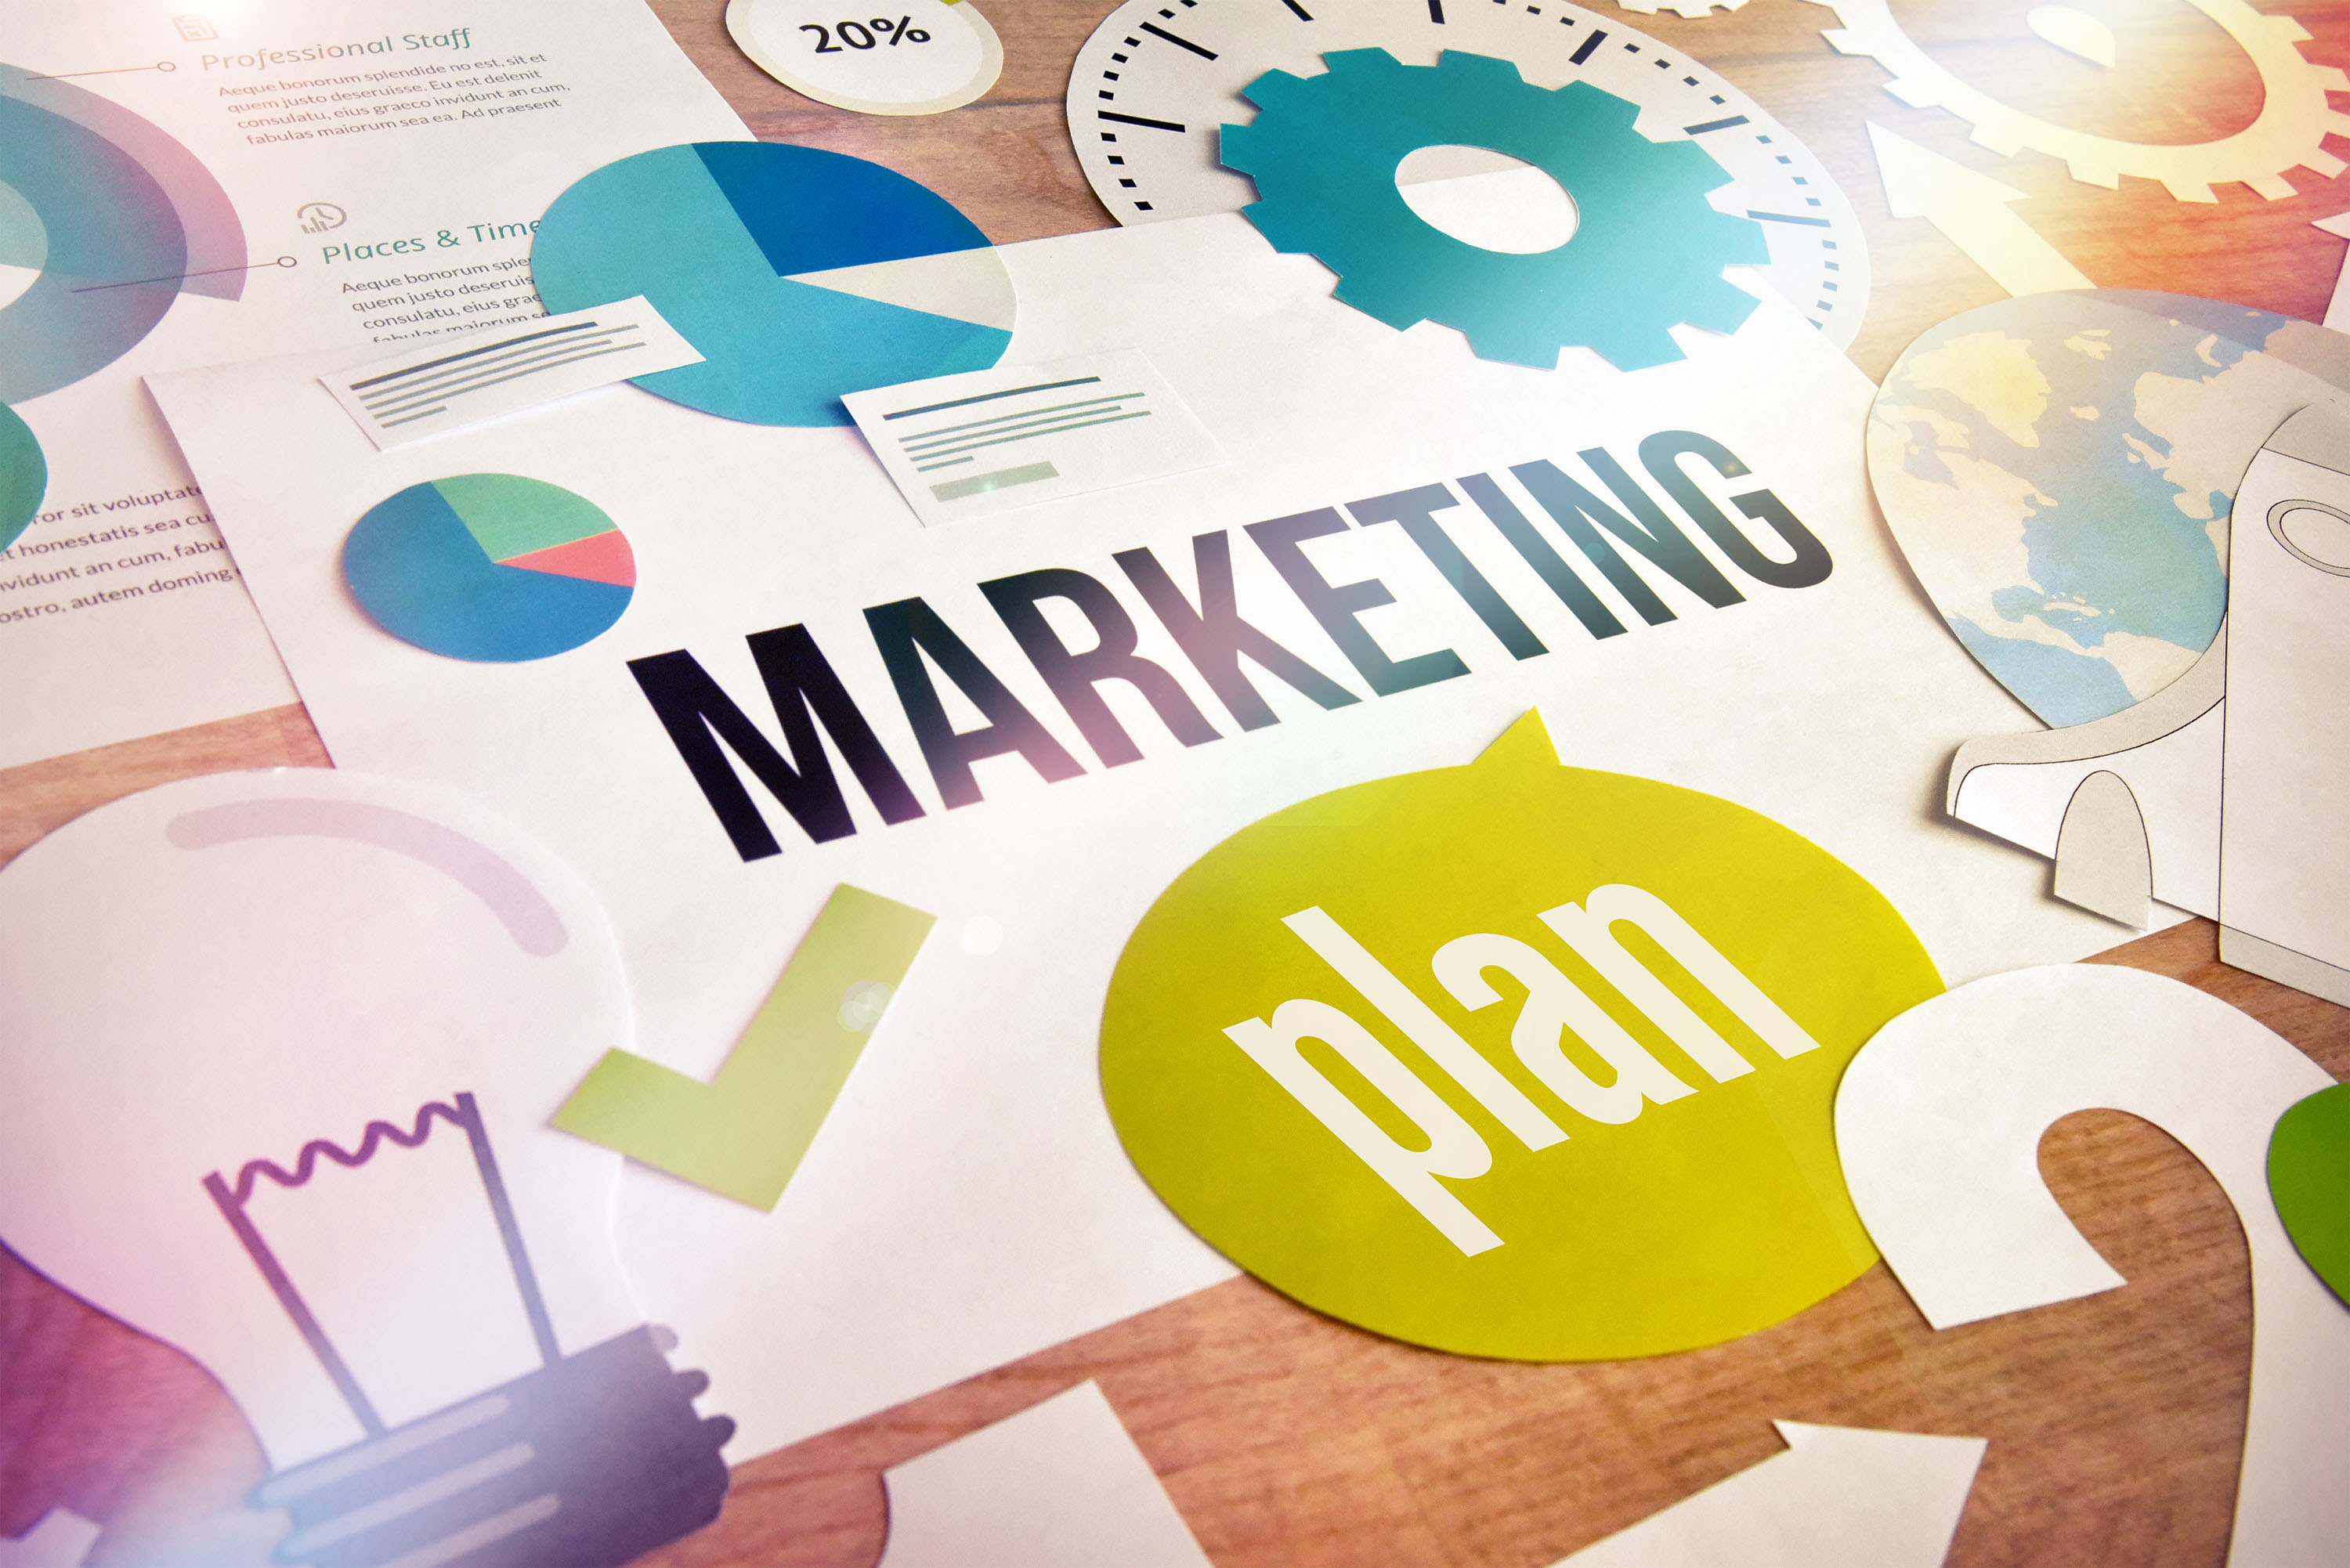 By Creating a Platform for Marketing